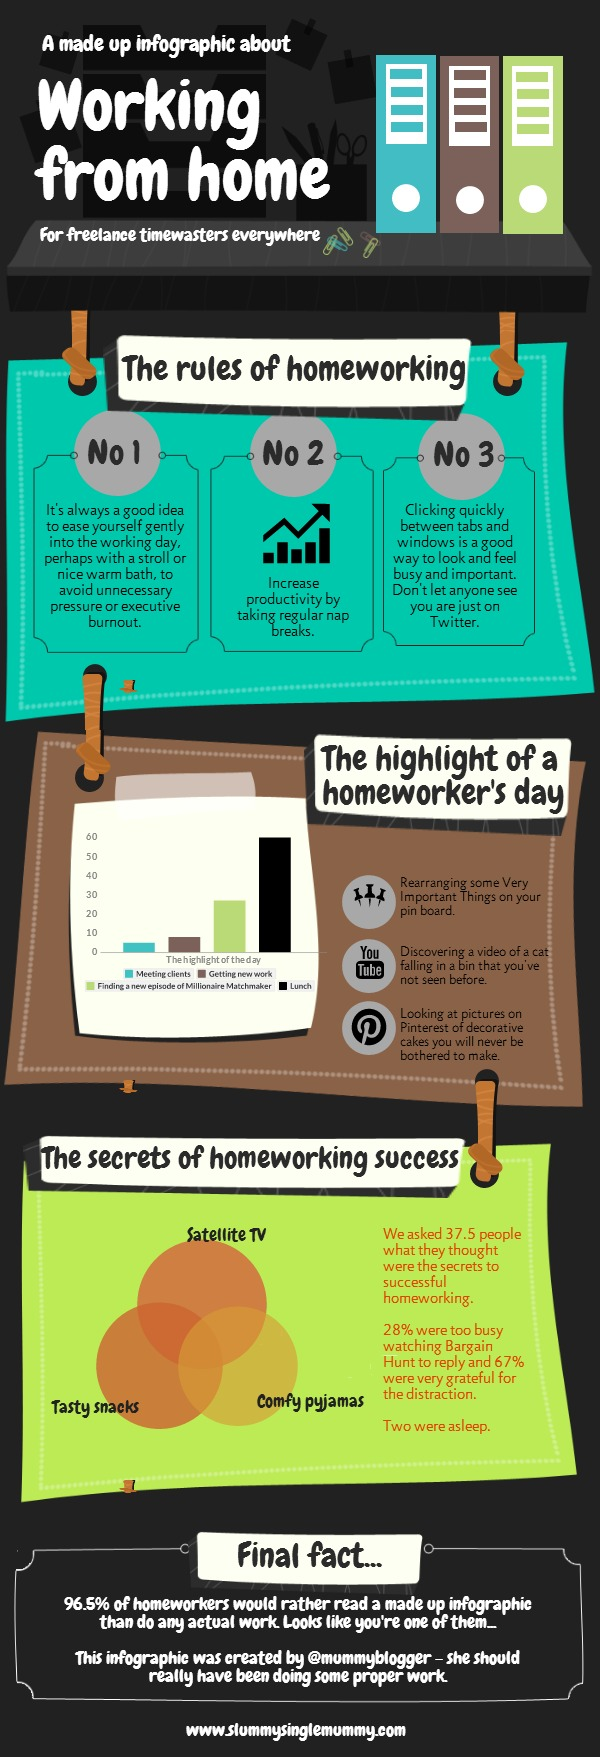 Made up infographic about working from home